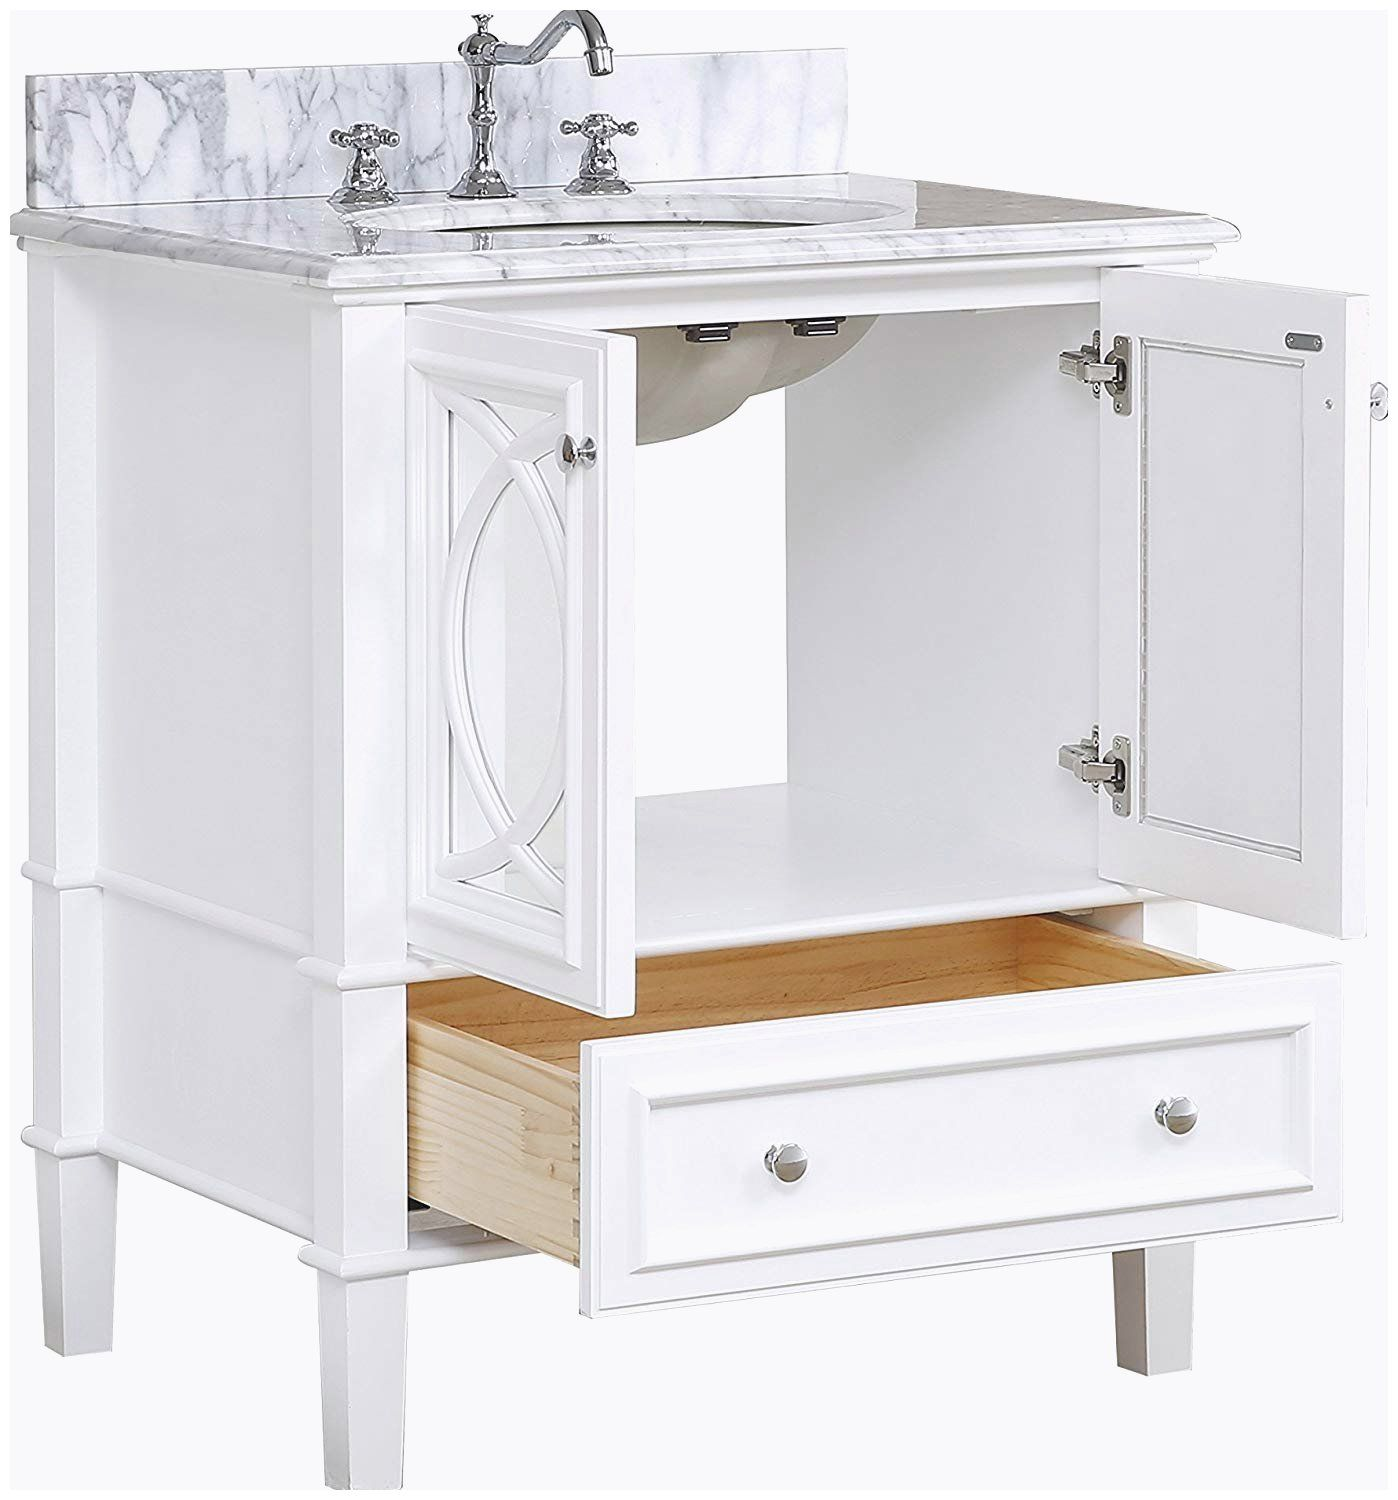 81lgrne5y L Ac Sl1500 Bathroom Vanities 18 Inches Deep Of Bathroom